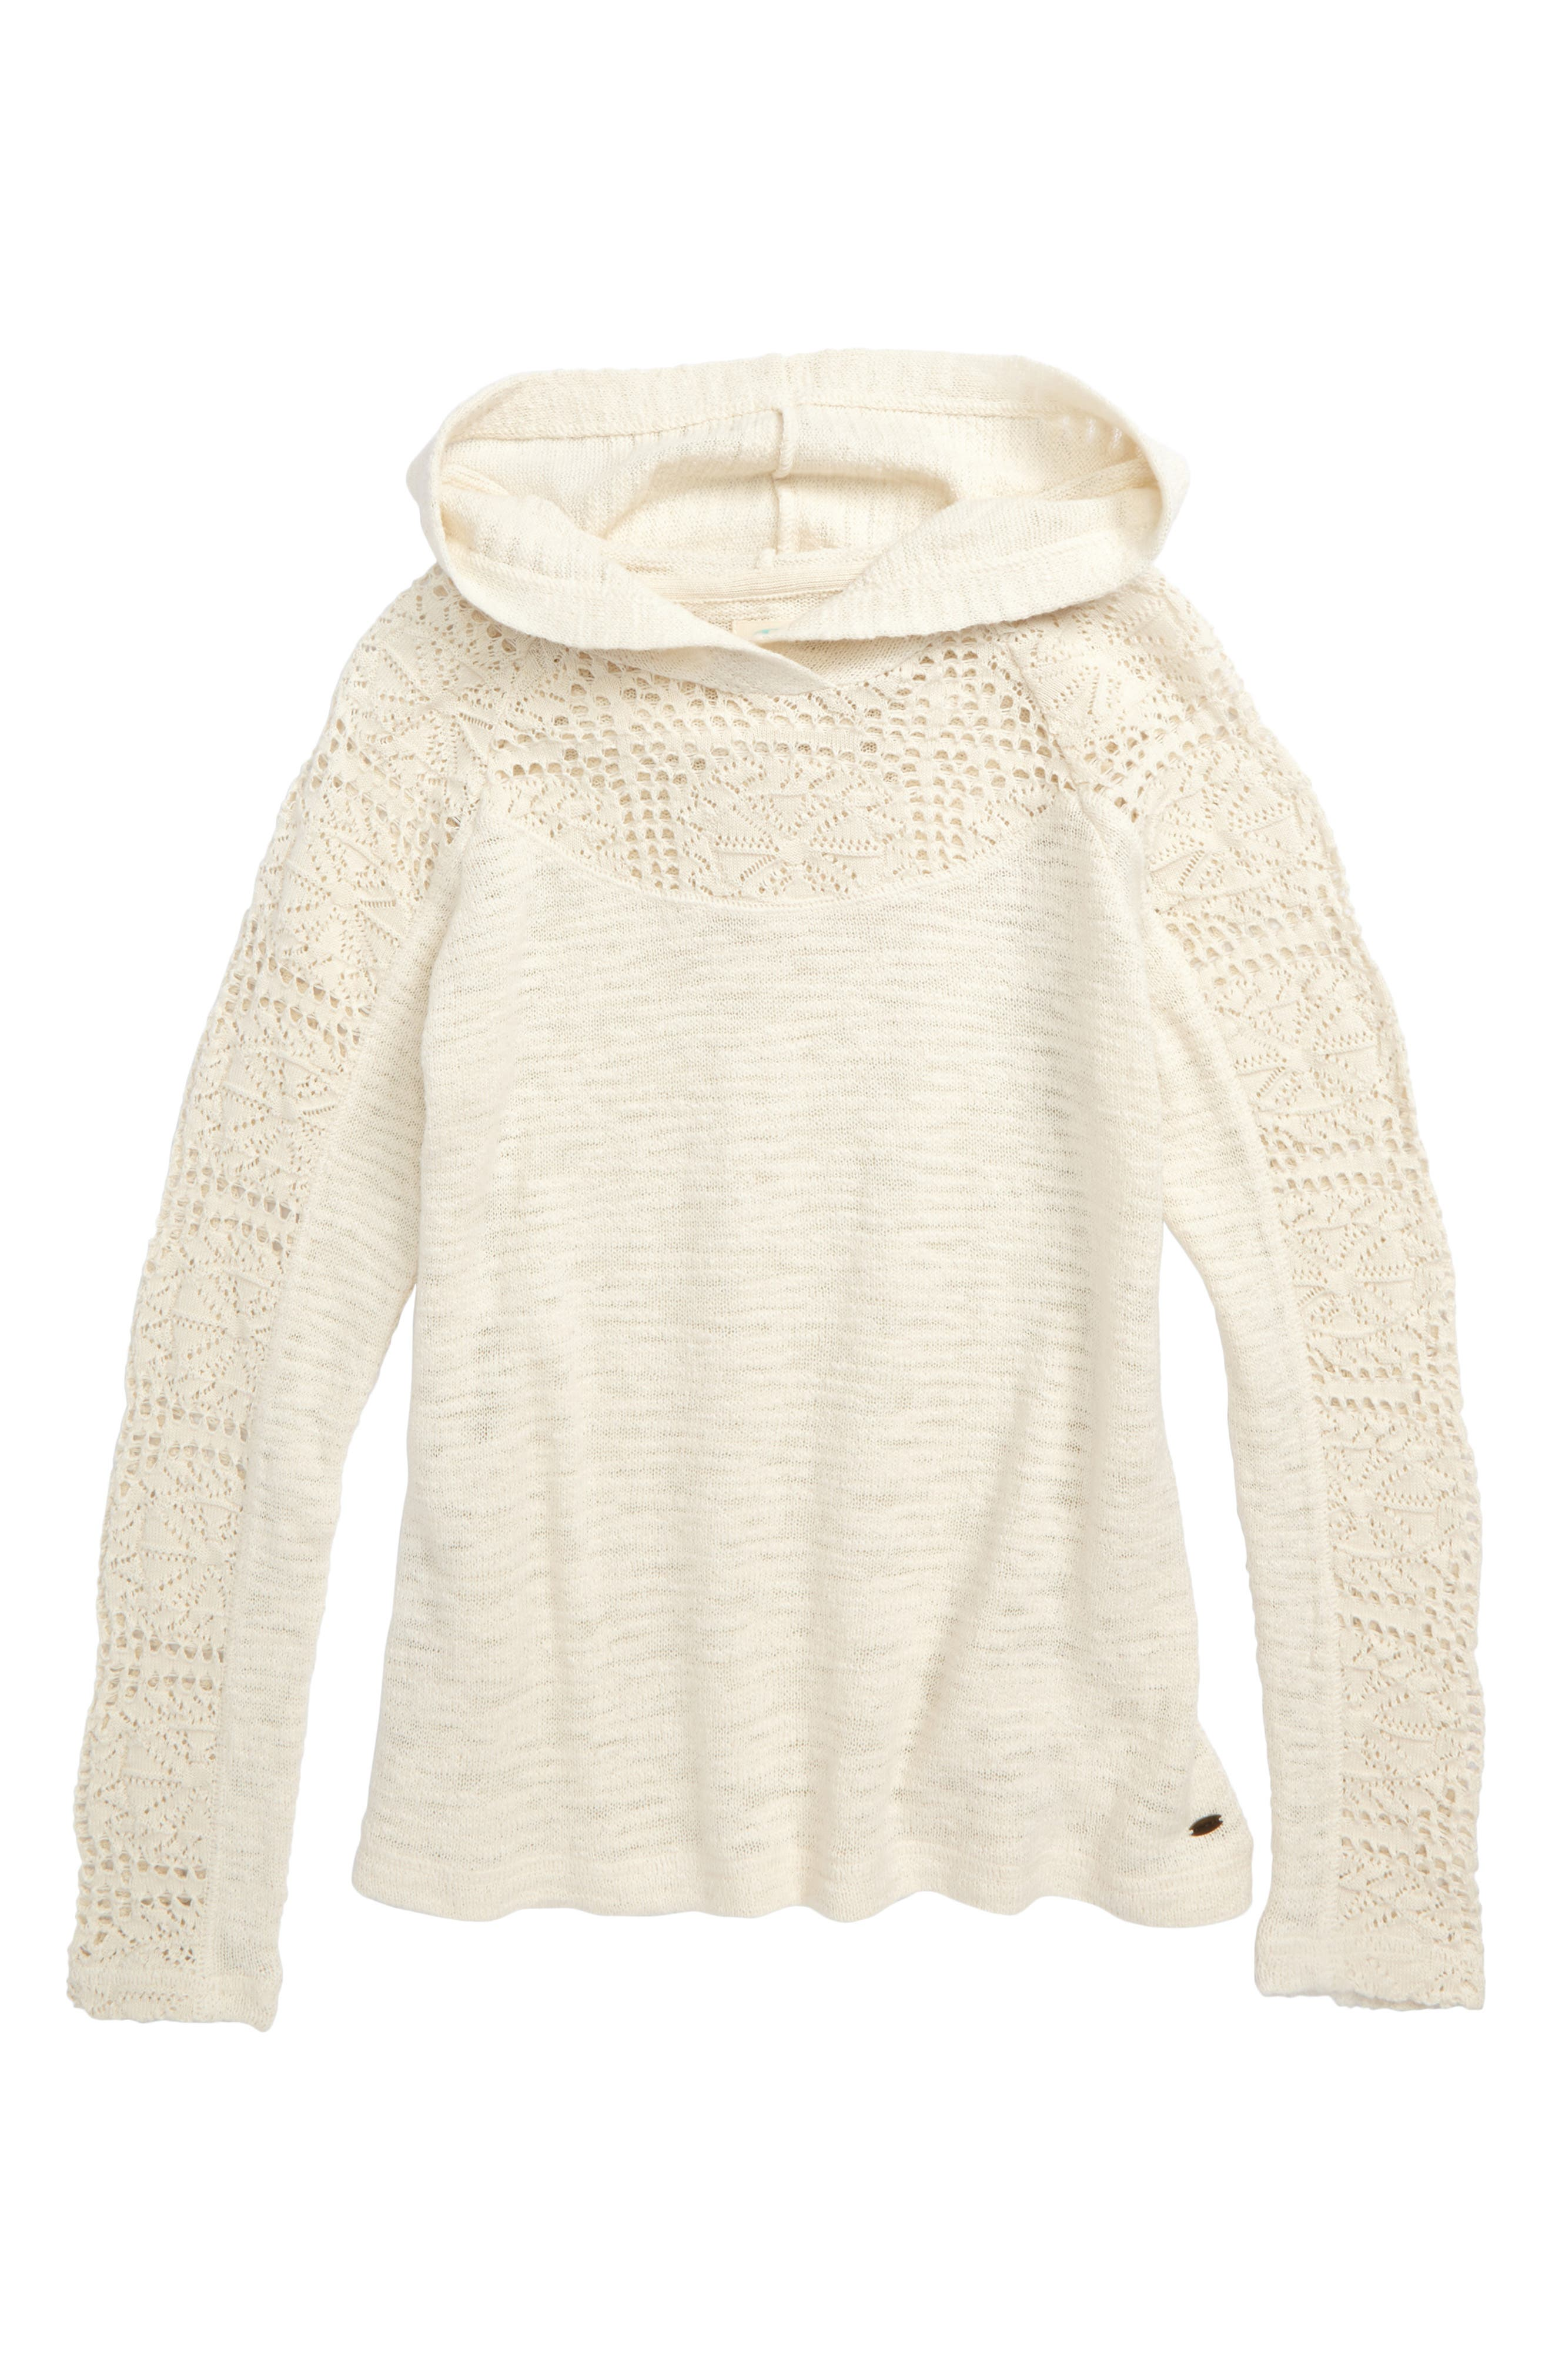 O'Neill Amore Hooded Sweater (Big Girls)